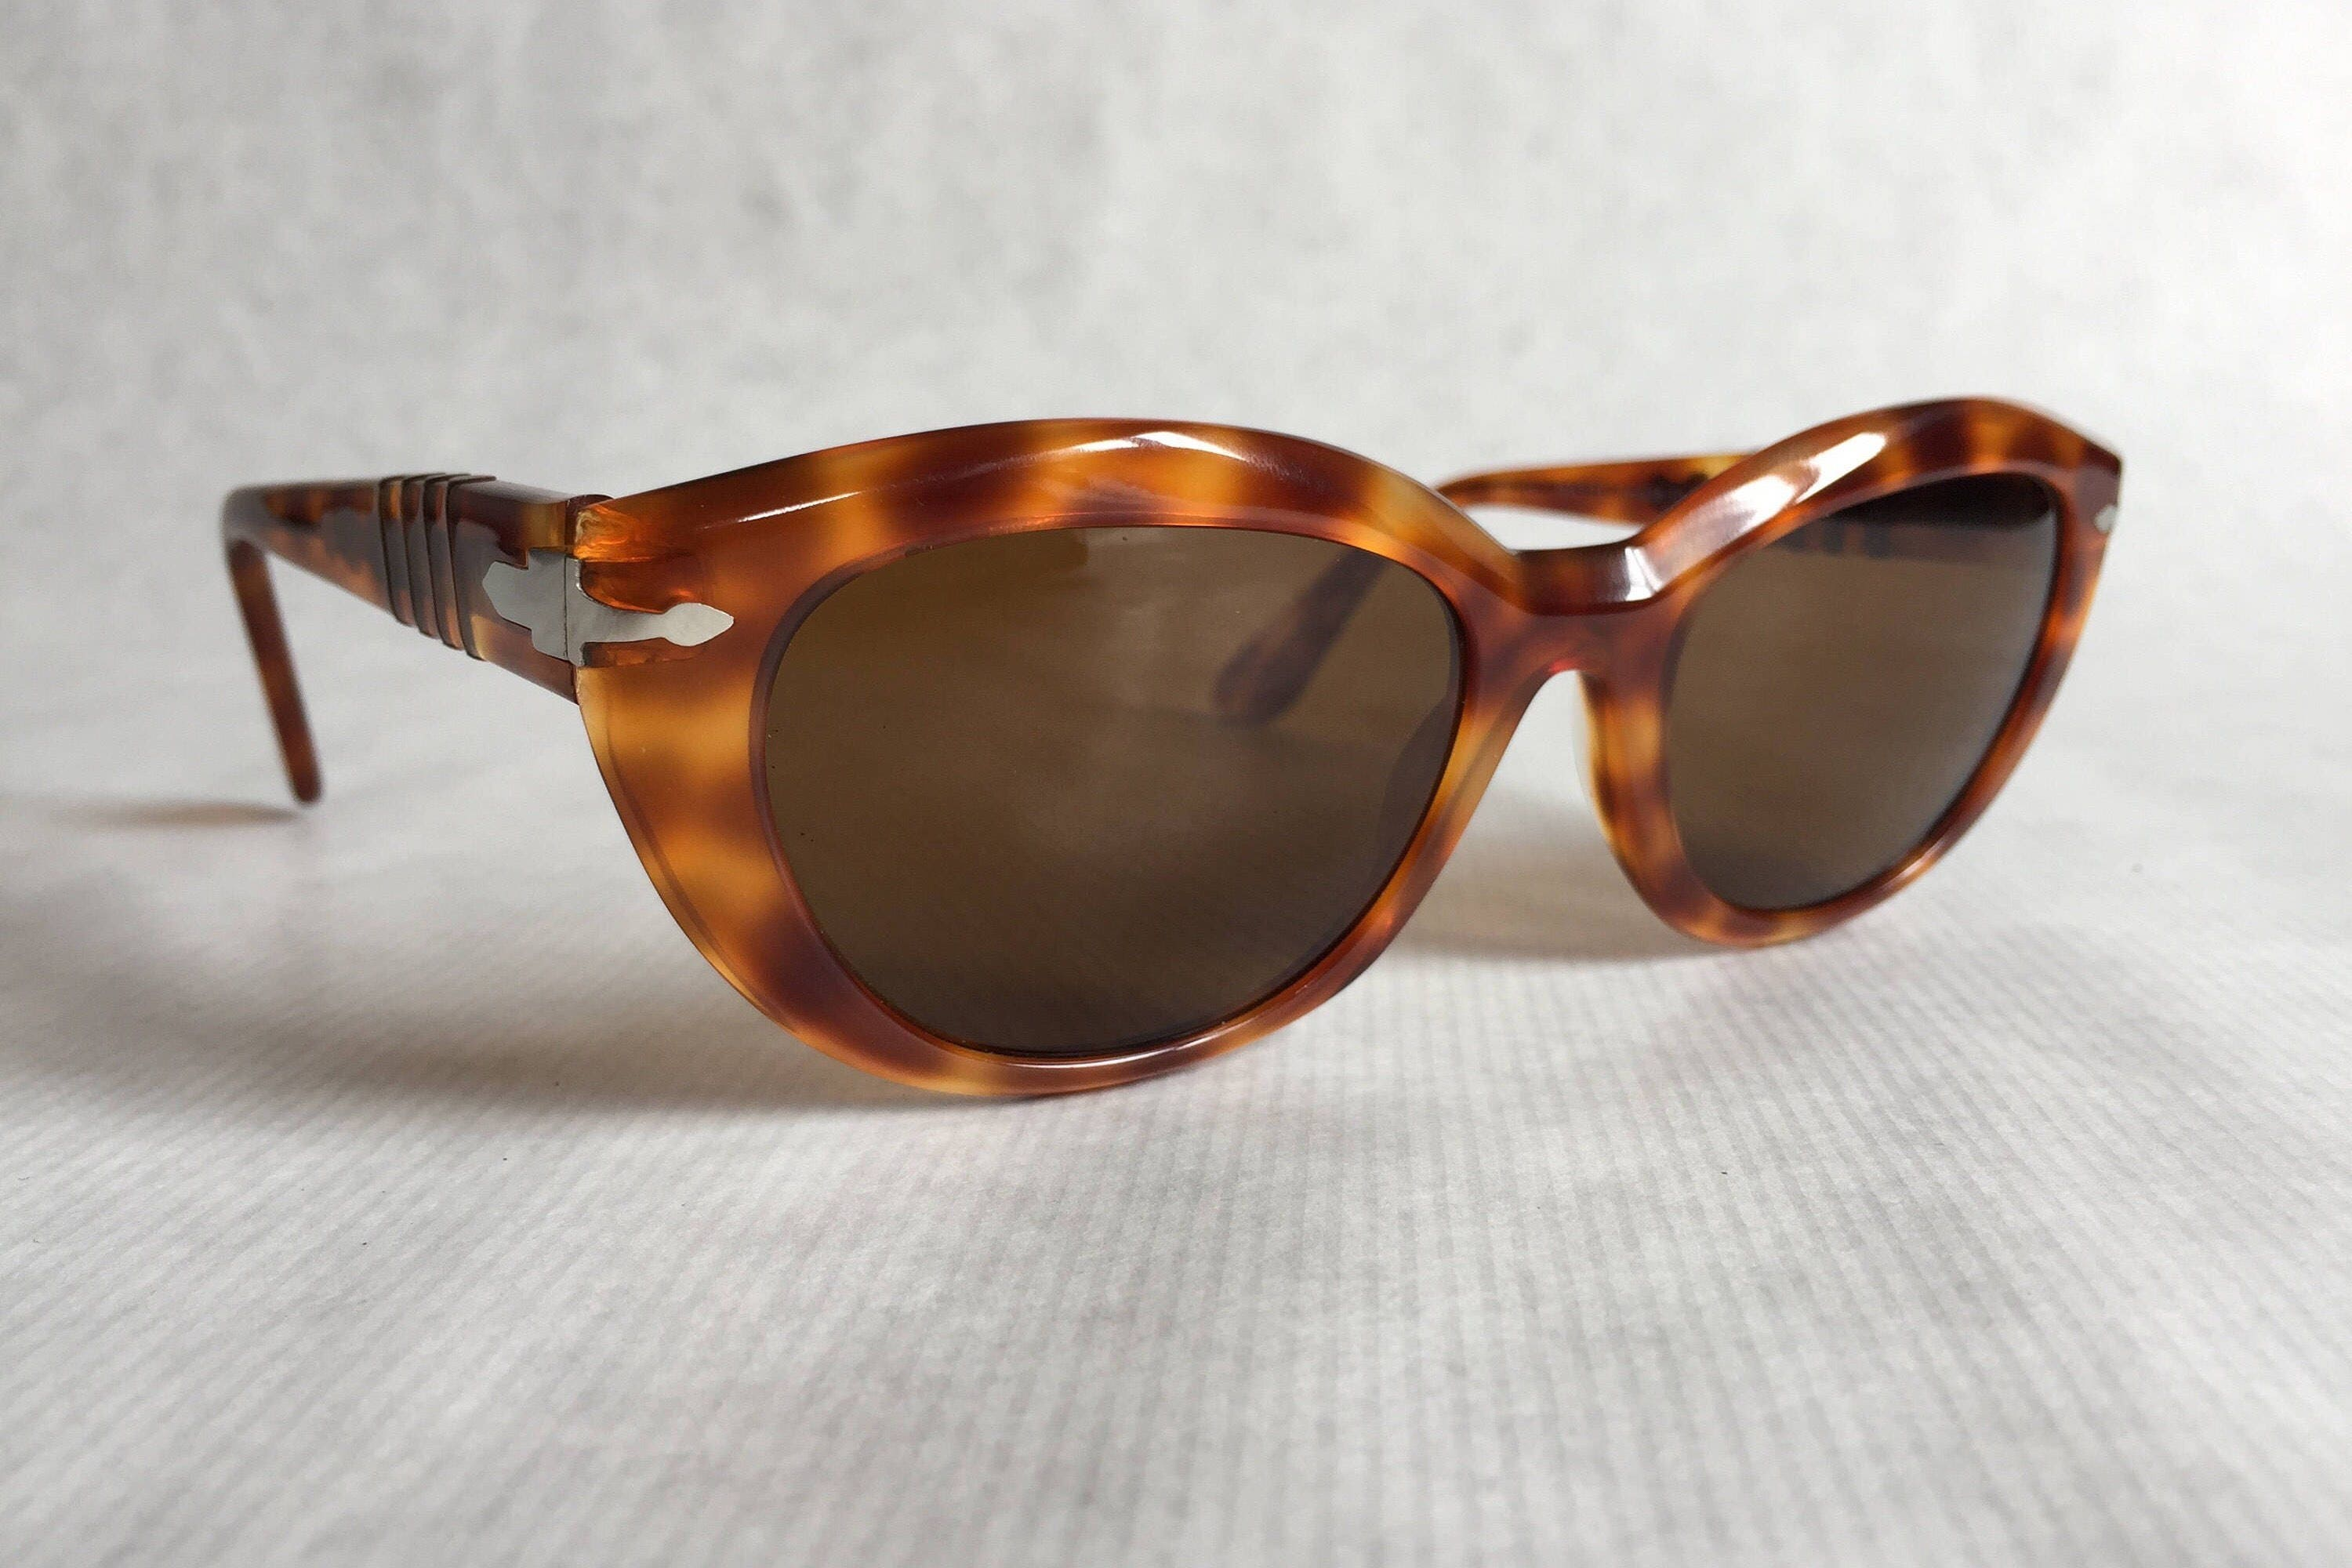 9a78a8bdfd90c Persol Ratti 843 Vintage Sunglasses New Old Stock. gallery photo ...